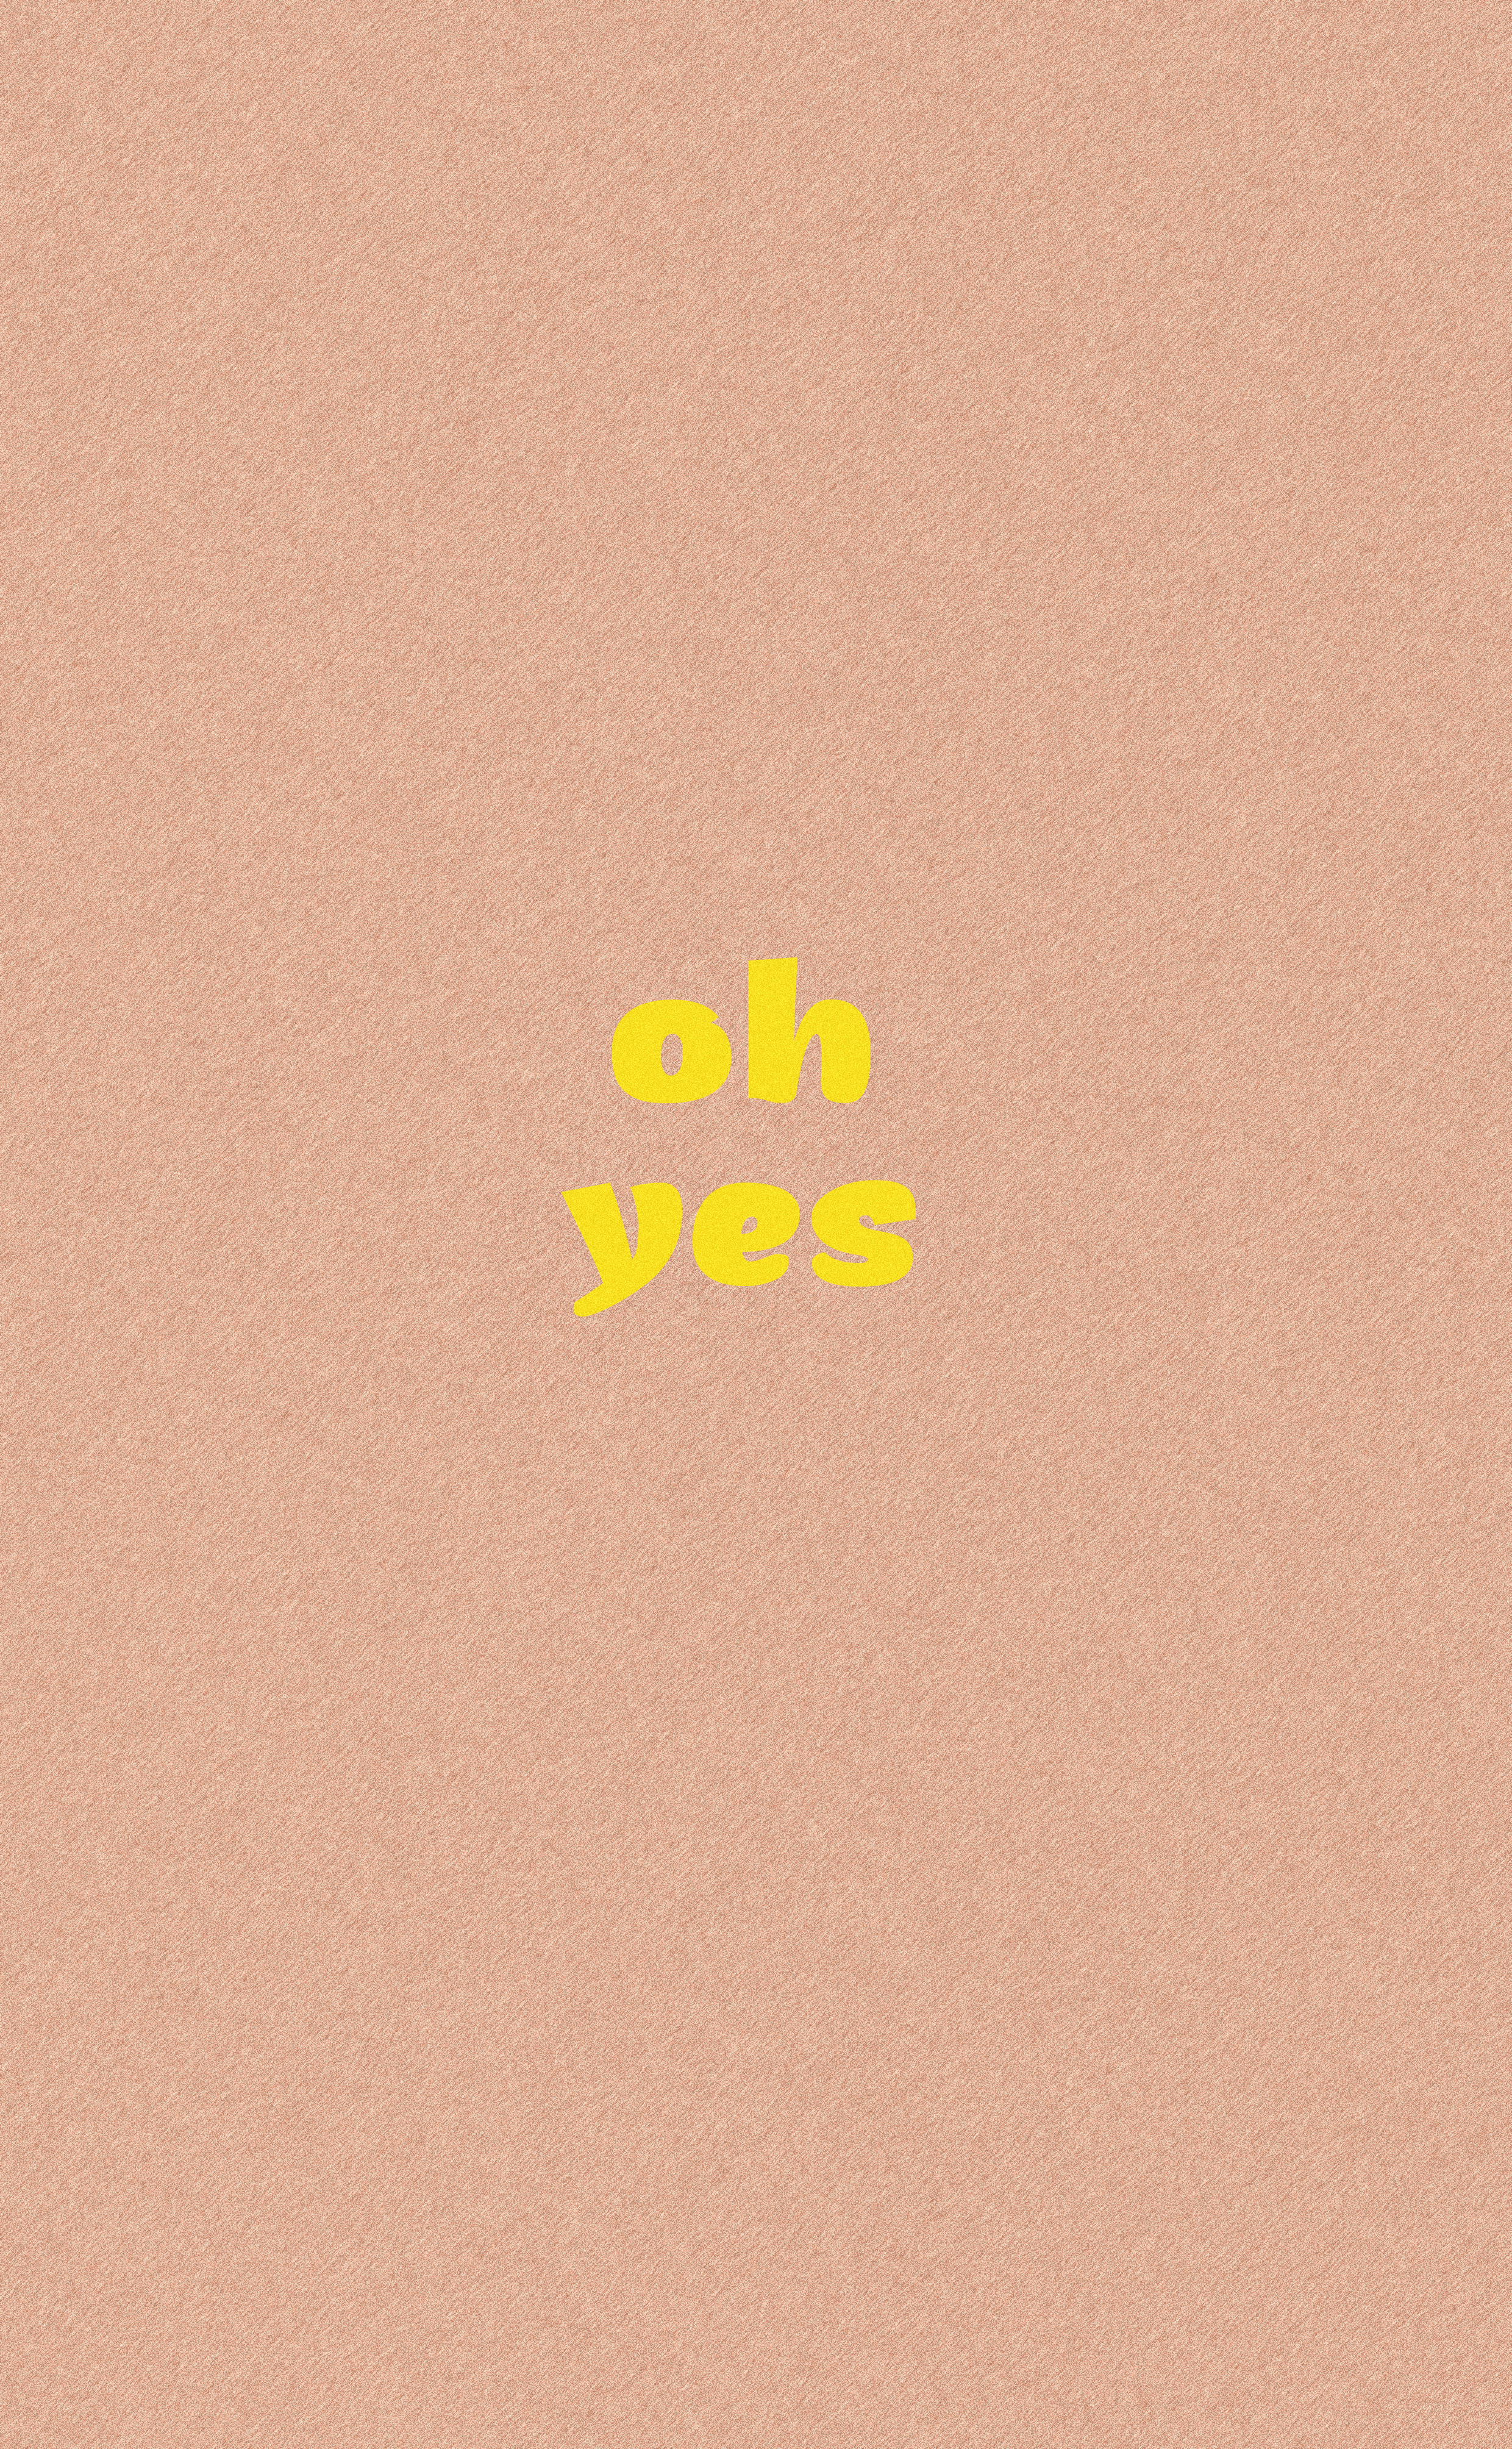 oh yes wallpaper3